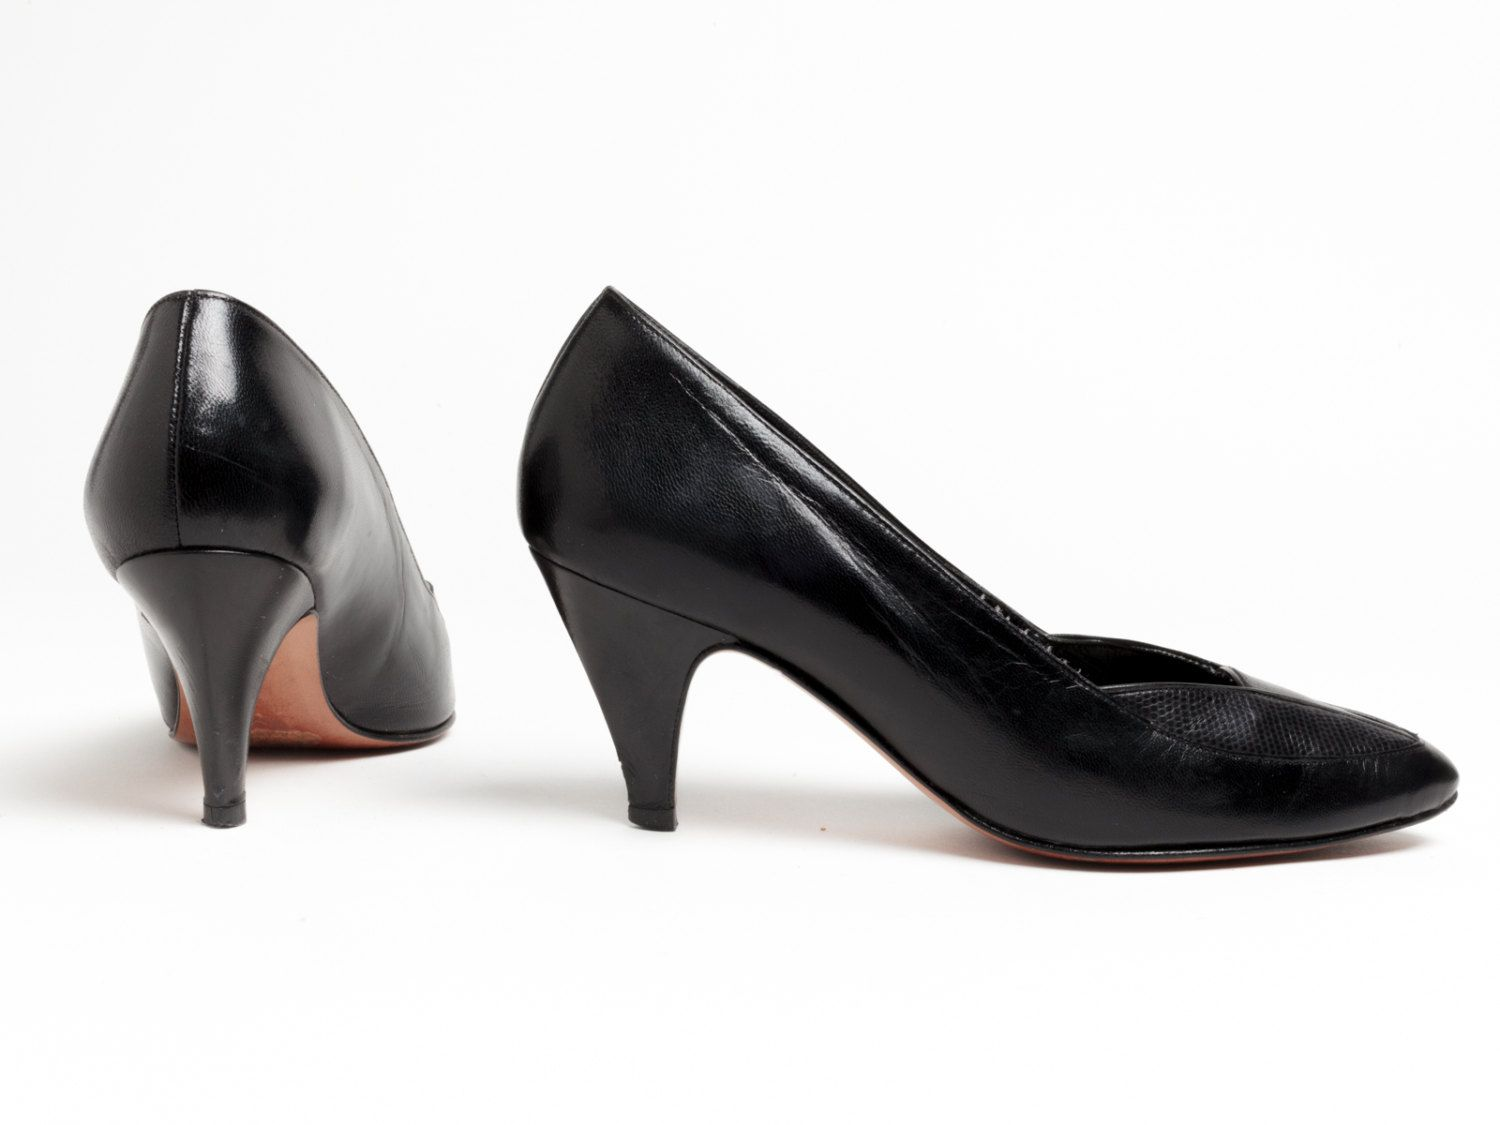 d68fc36138dcc 80s Black High Heels | Vintage Pumps | Black Leather Heels | Women's ...